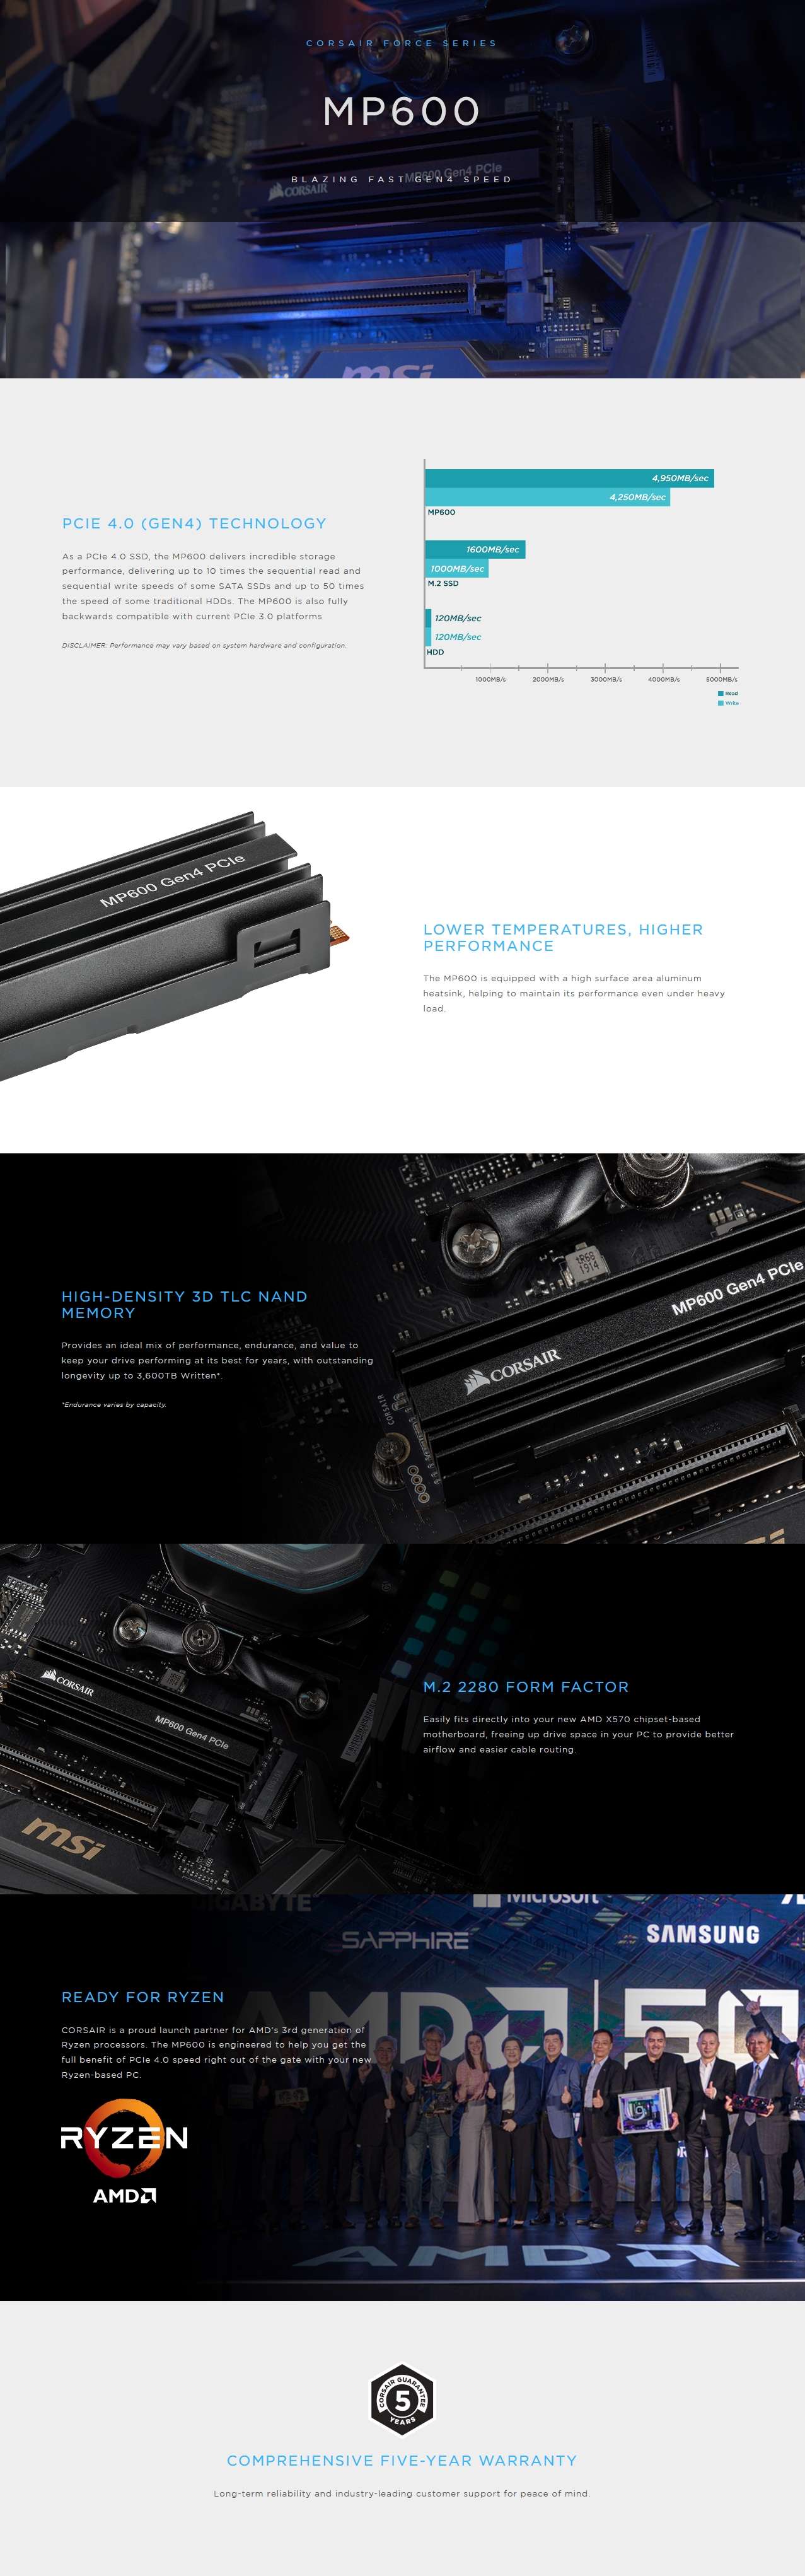 A large marketing image providing additional information about the product Corsair Force MP600 2TB Gen4 PCIe NVMe M.2 SSD - Additional alt info not provided